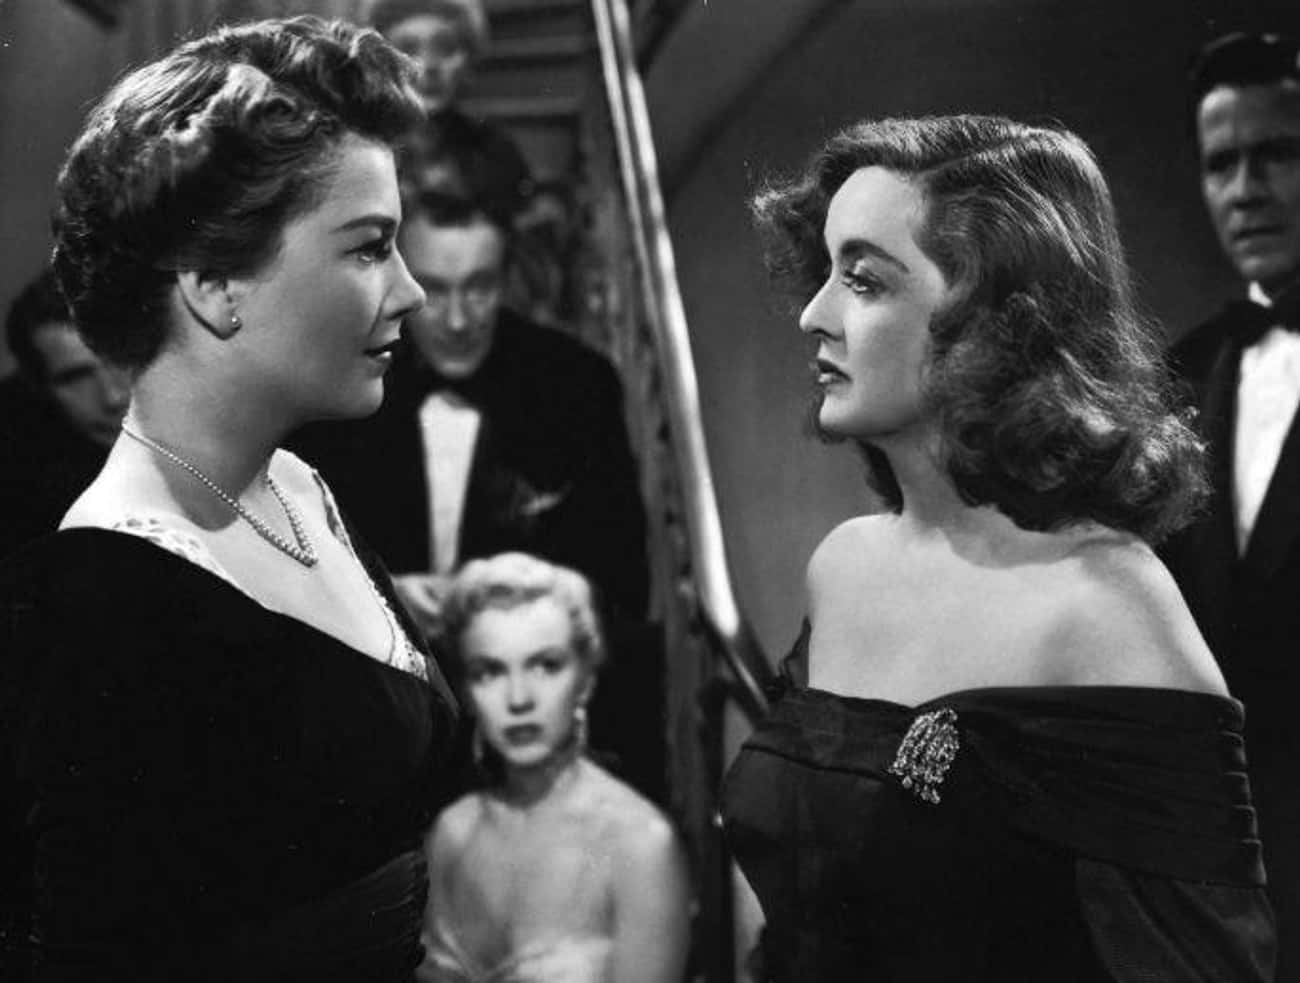 Anne Baxter & Bette Davis - Be is listed (or ranked) 3 on the list Every Time Film Costars Were Both Nominated For Leading Role Oscars